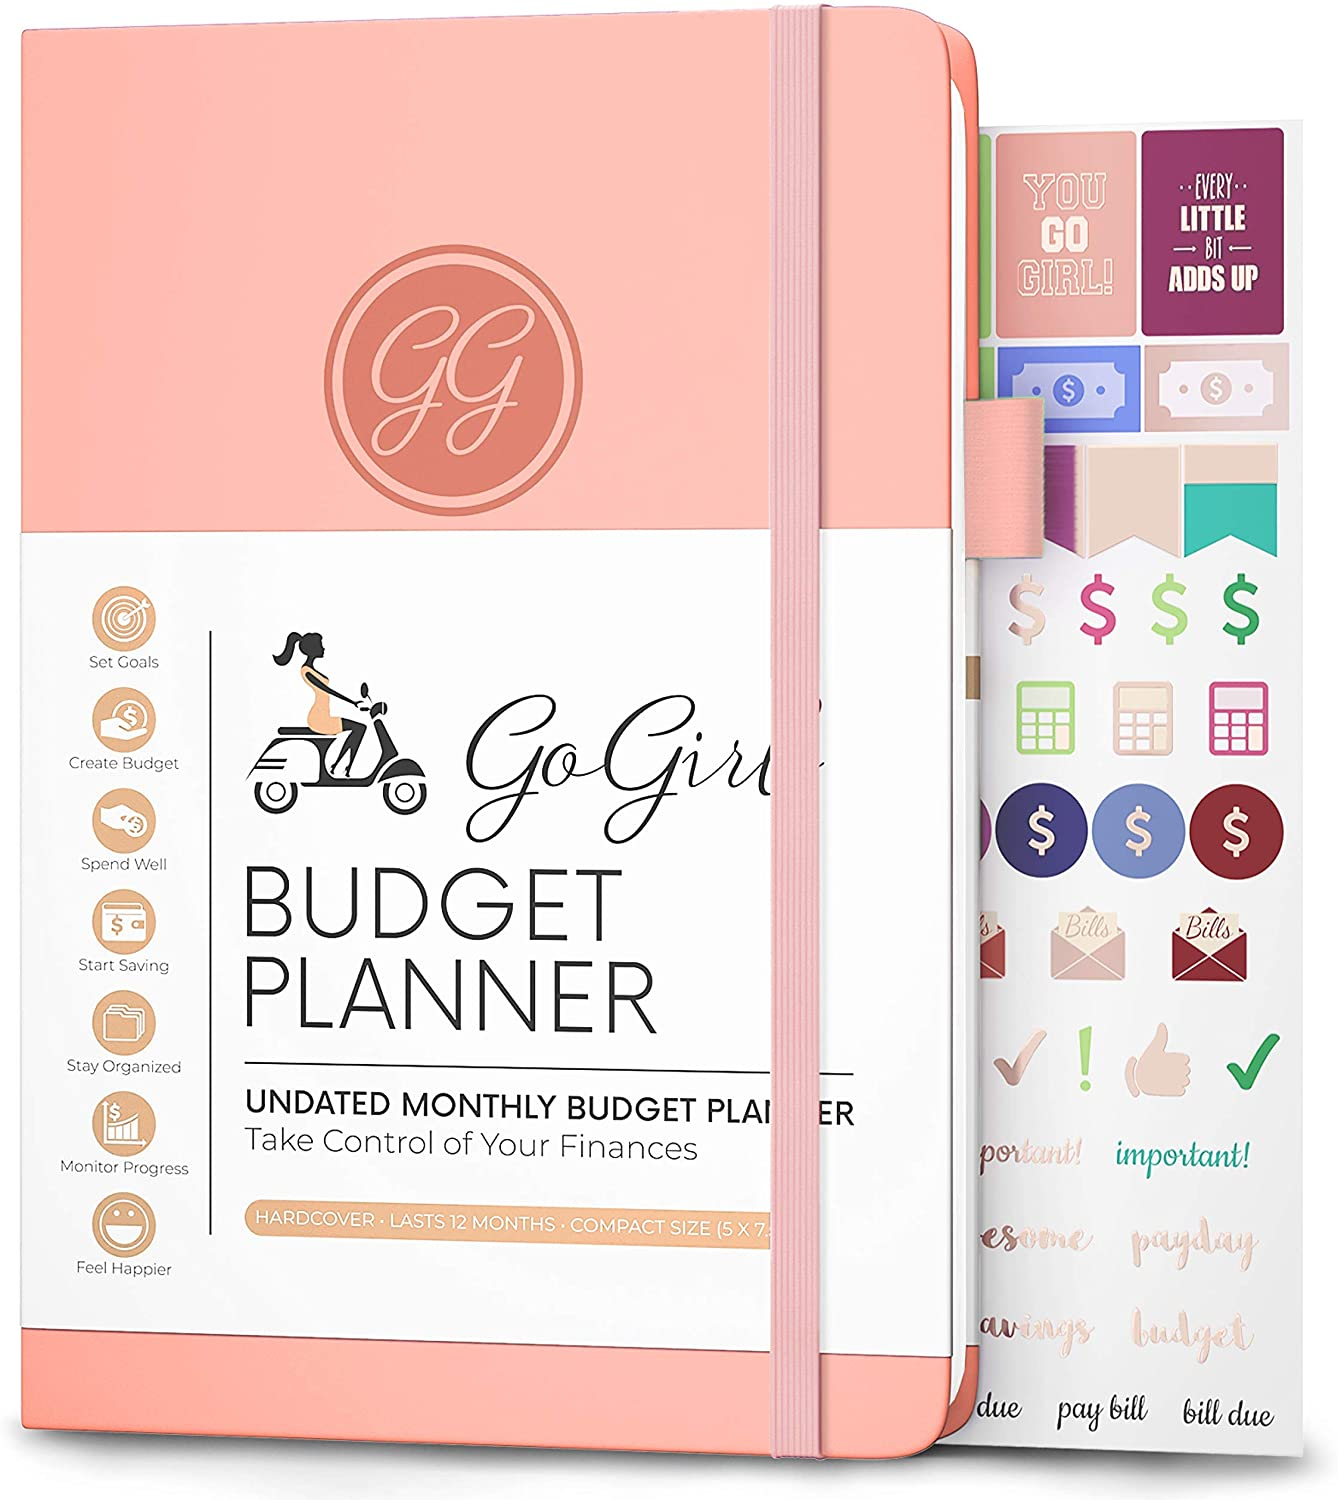 "GoGirl Budget Planner - Monthly Financial Planner Organizer Budget Book. Expense Tracker Notebook Journal to Control Your Money. Undated - Start Any Time, 5.3"" x 7.7"", Lasts 1 Year - Peach Pink"